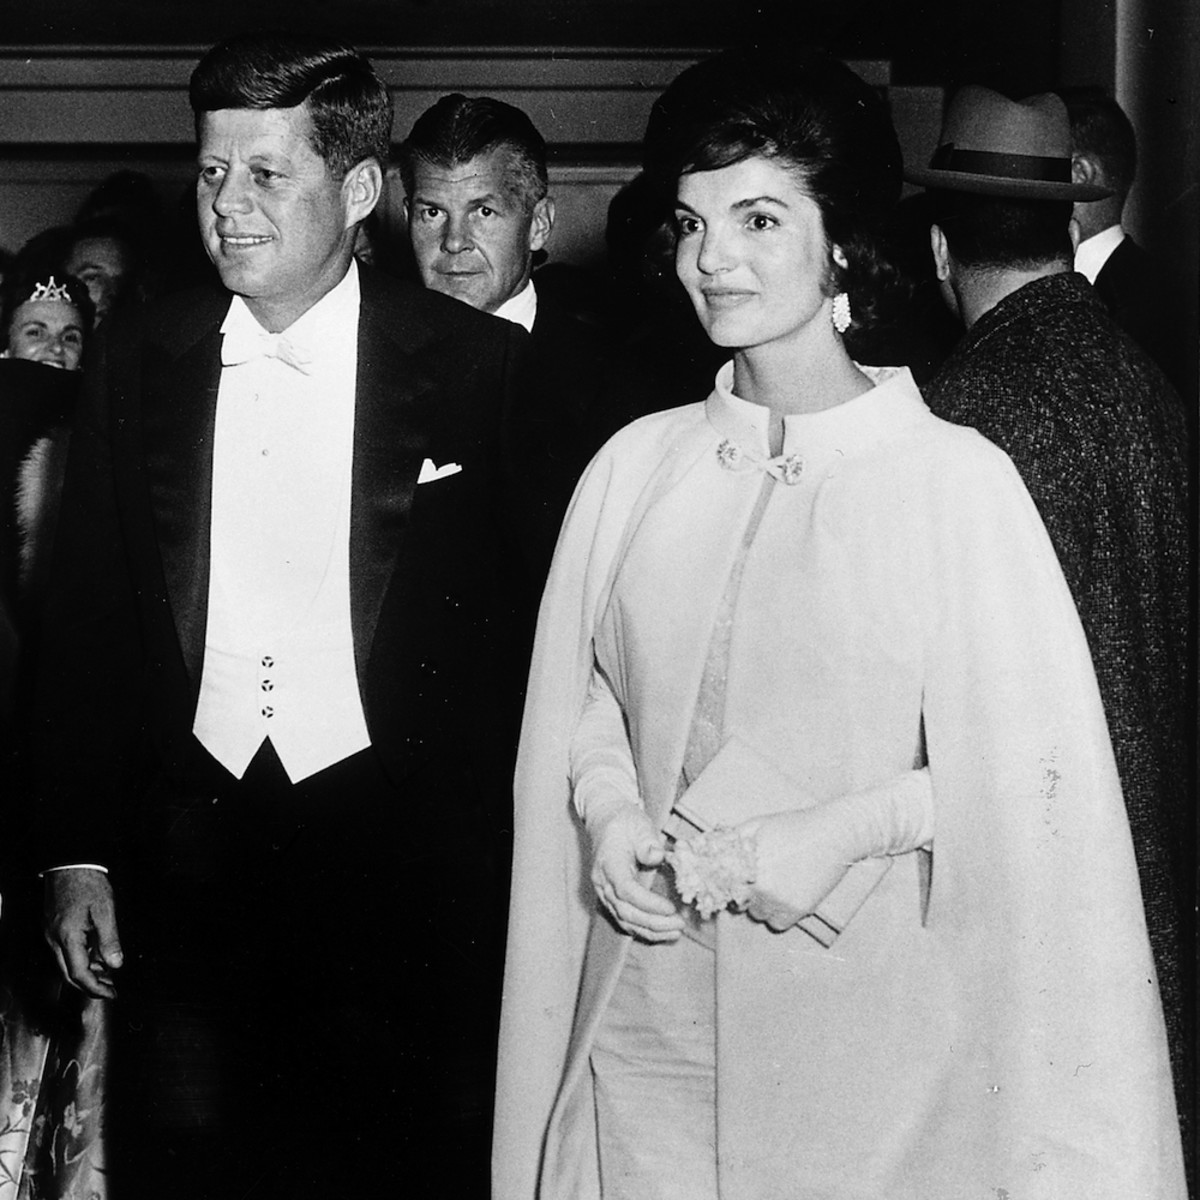 President John and Mrs Kennedy at the Inaugural Ball, 20 January 1961